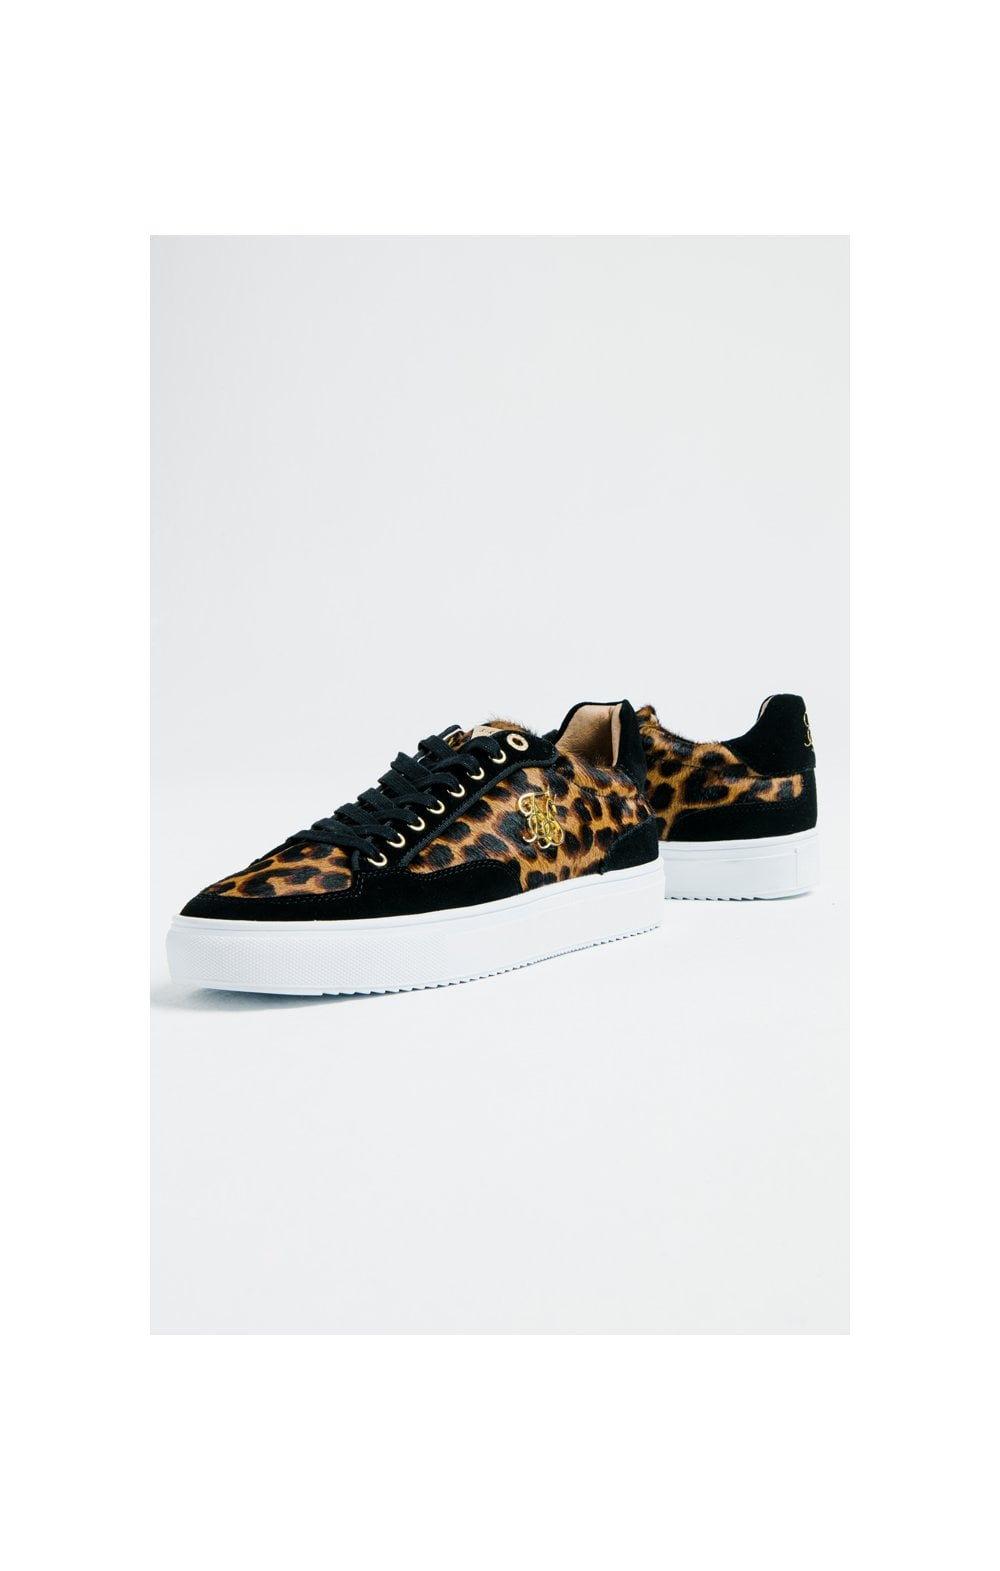 SikSilk x Dani Alves Phantom Leopard - Black Leopard (2)